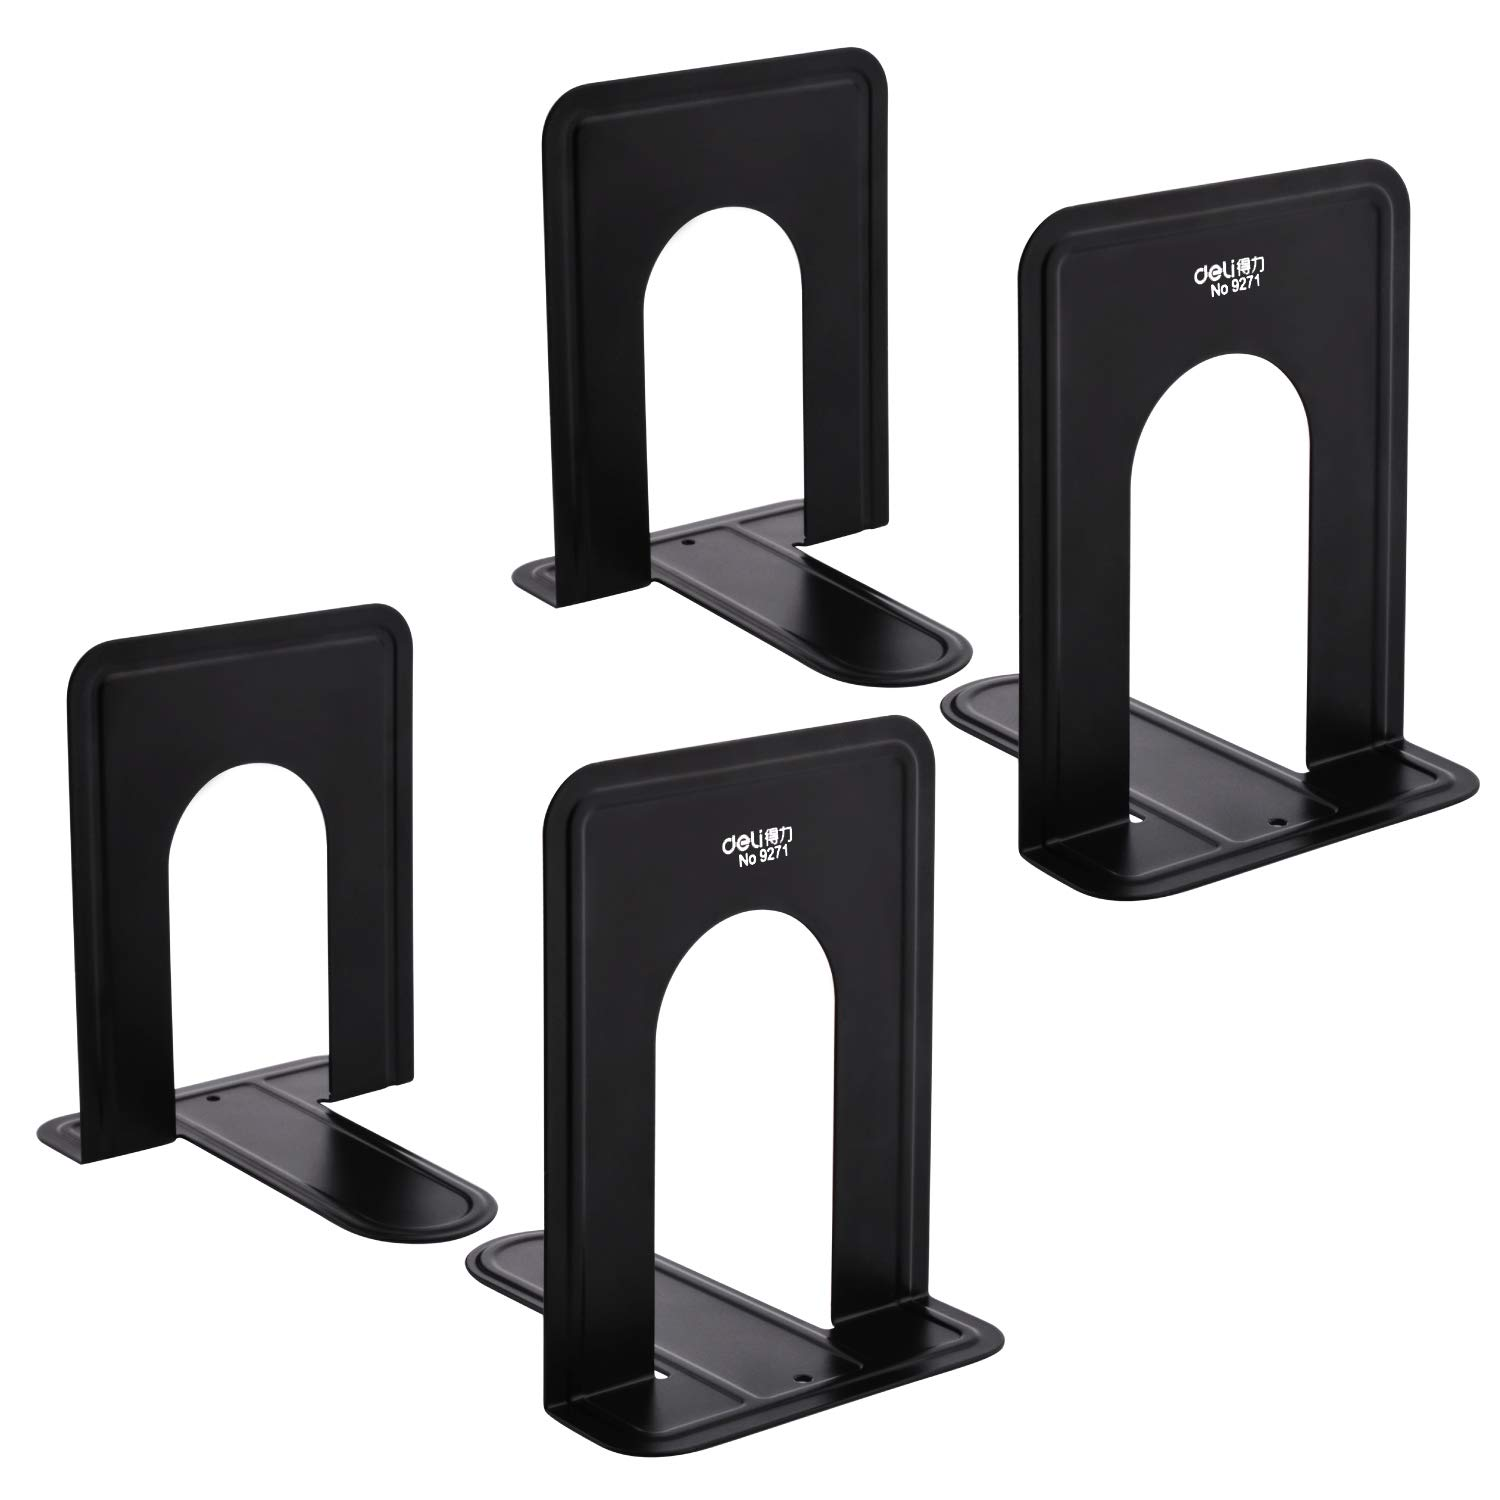 MaxGear Universal Economy Bookends, Nonskid, Heavy Duty Metal Book Ends Supports for Books, Movies, DVDs, Magazines, Video Games, Standard, 6 x 4.6 x 6.inch, Black, 2 Pair/4 Piece